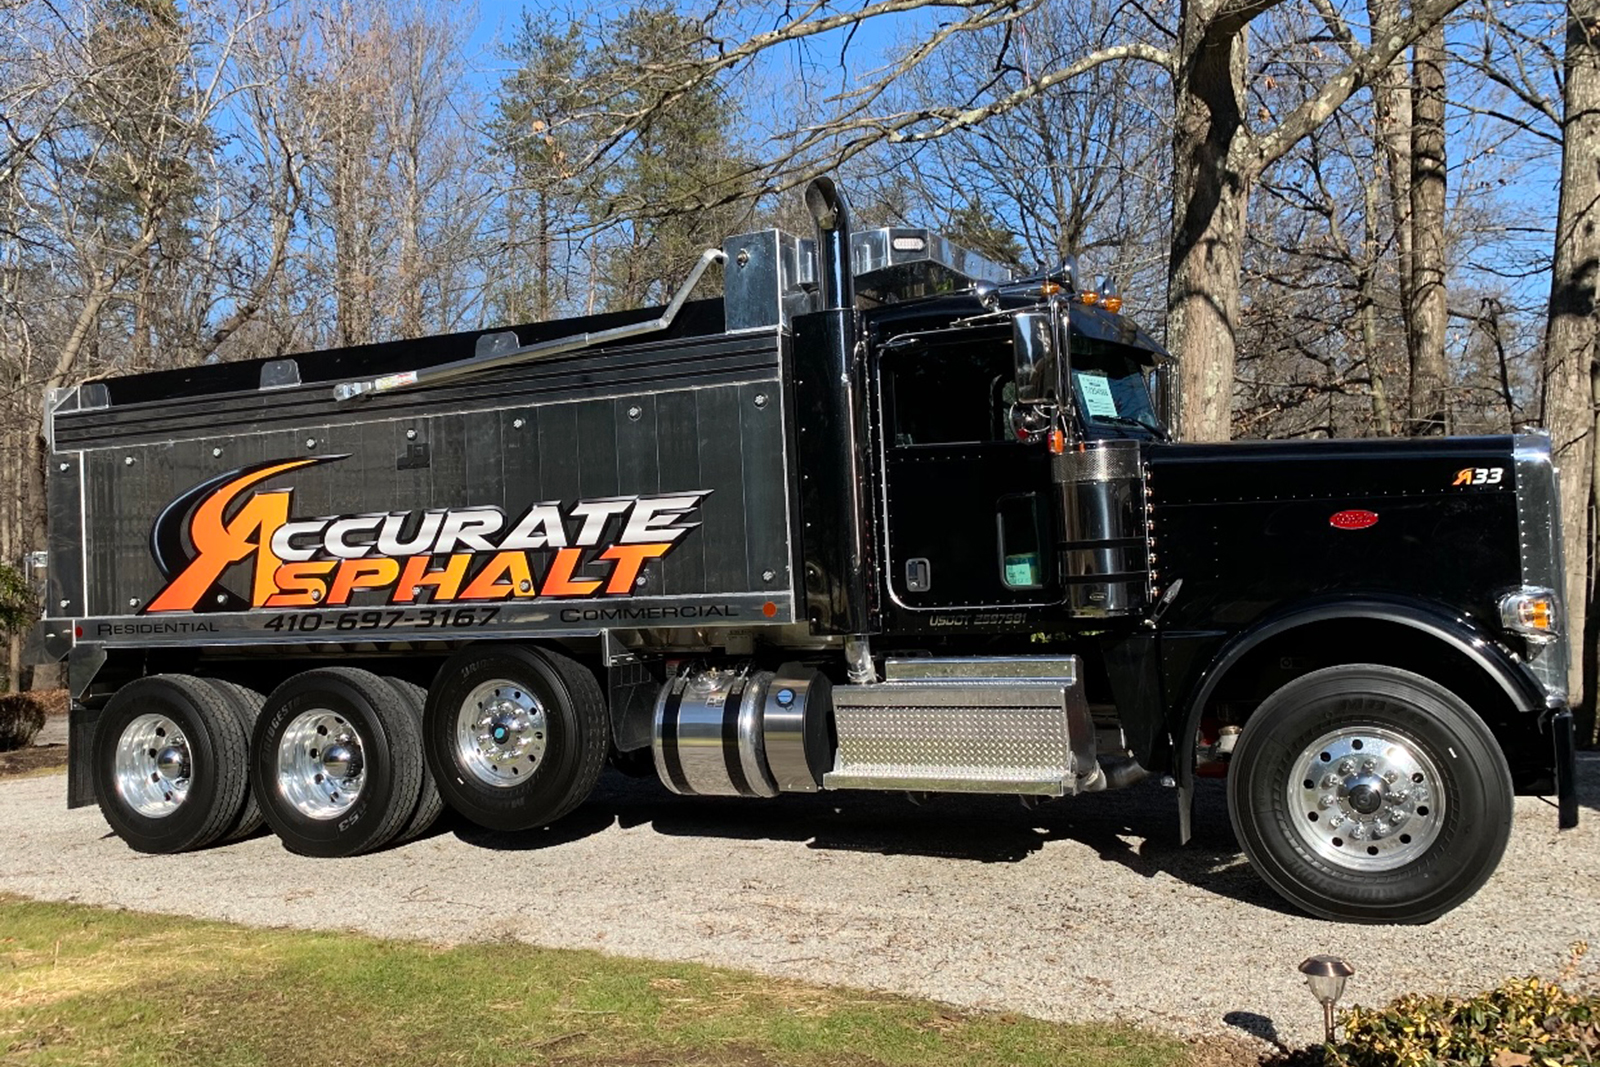 If you see an Accurate Asphalt truck in your neighborhood, say hi!